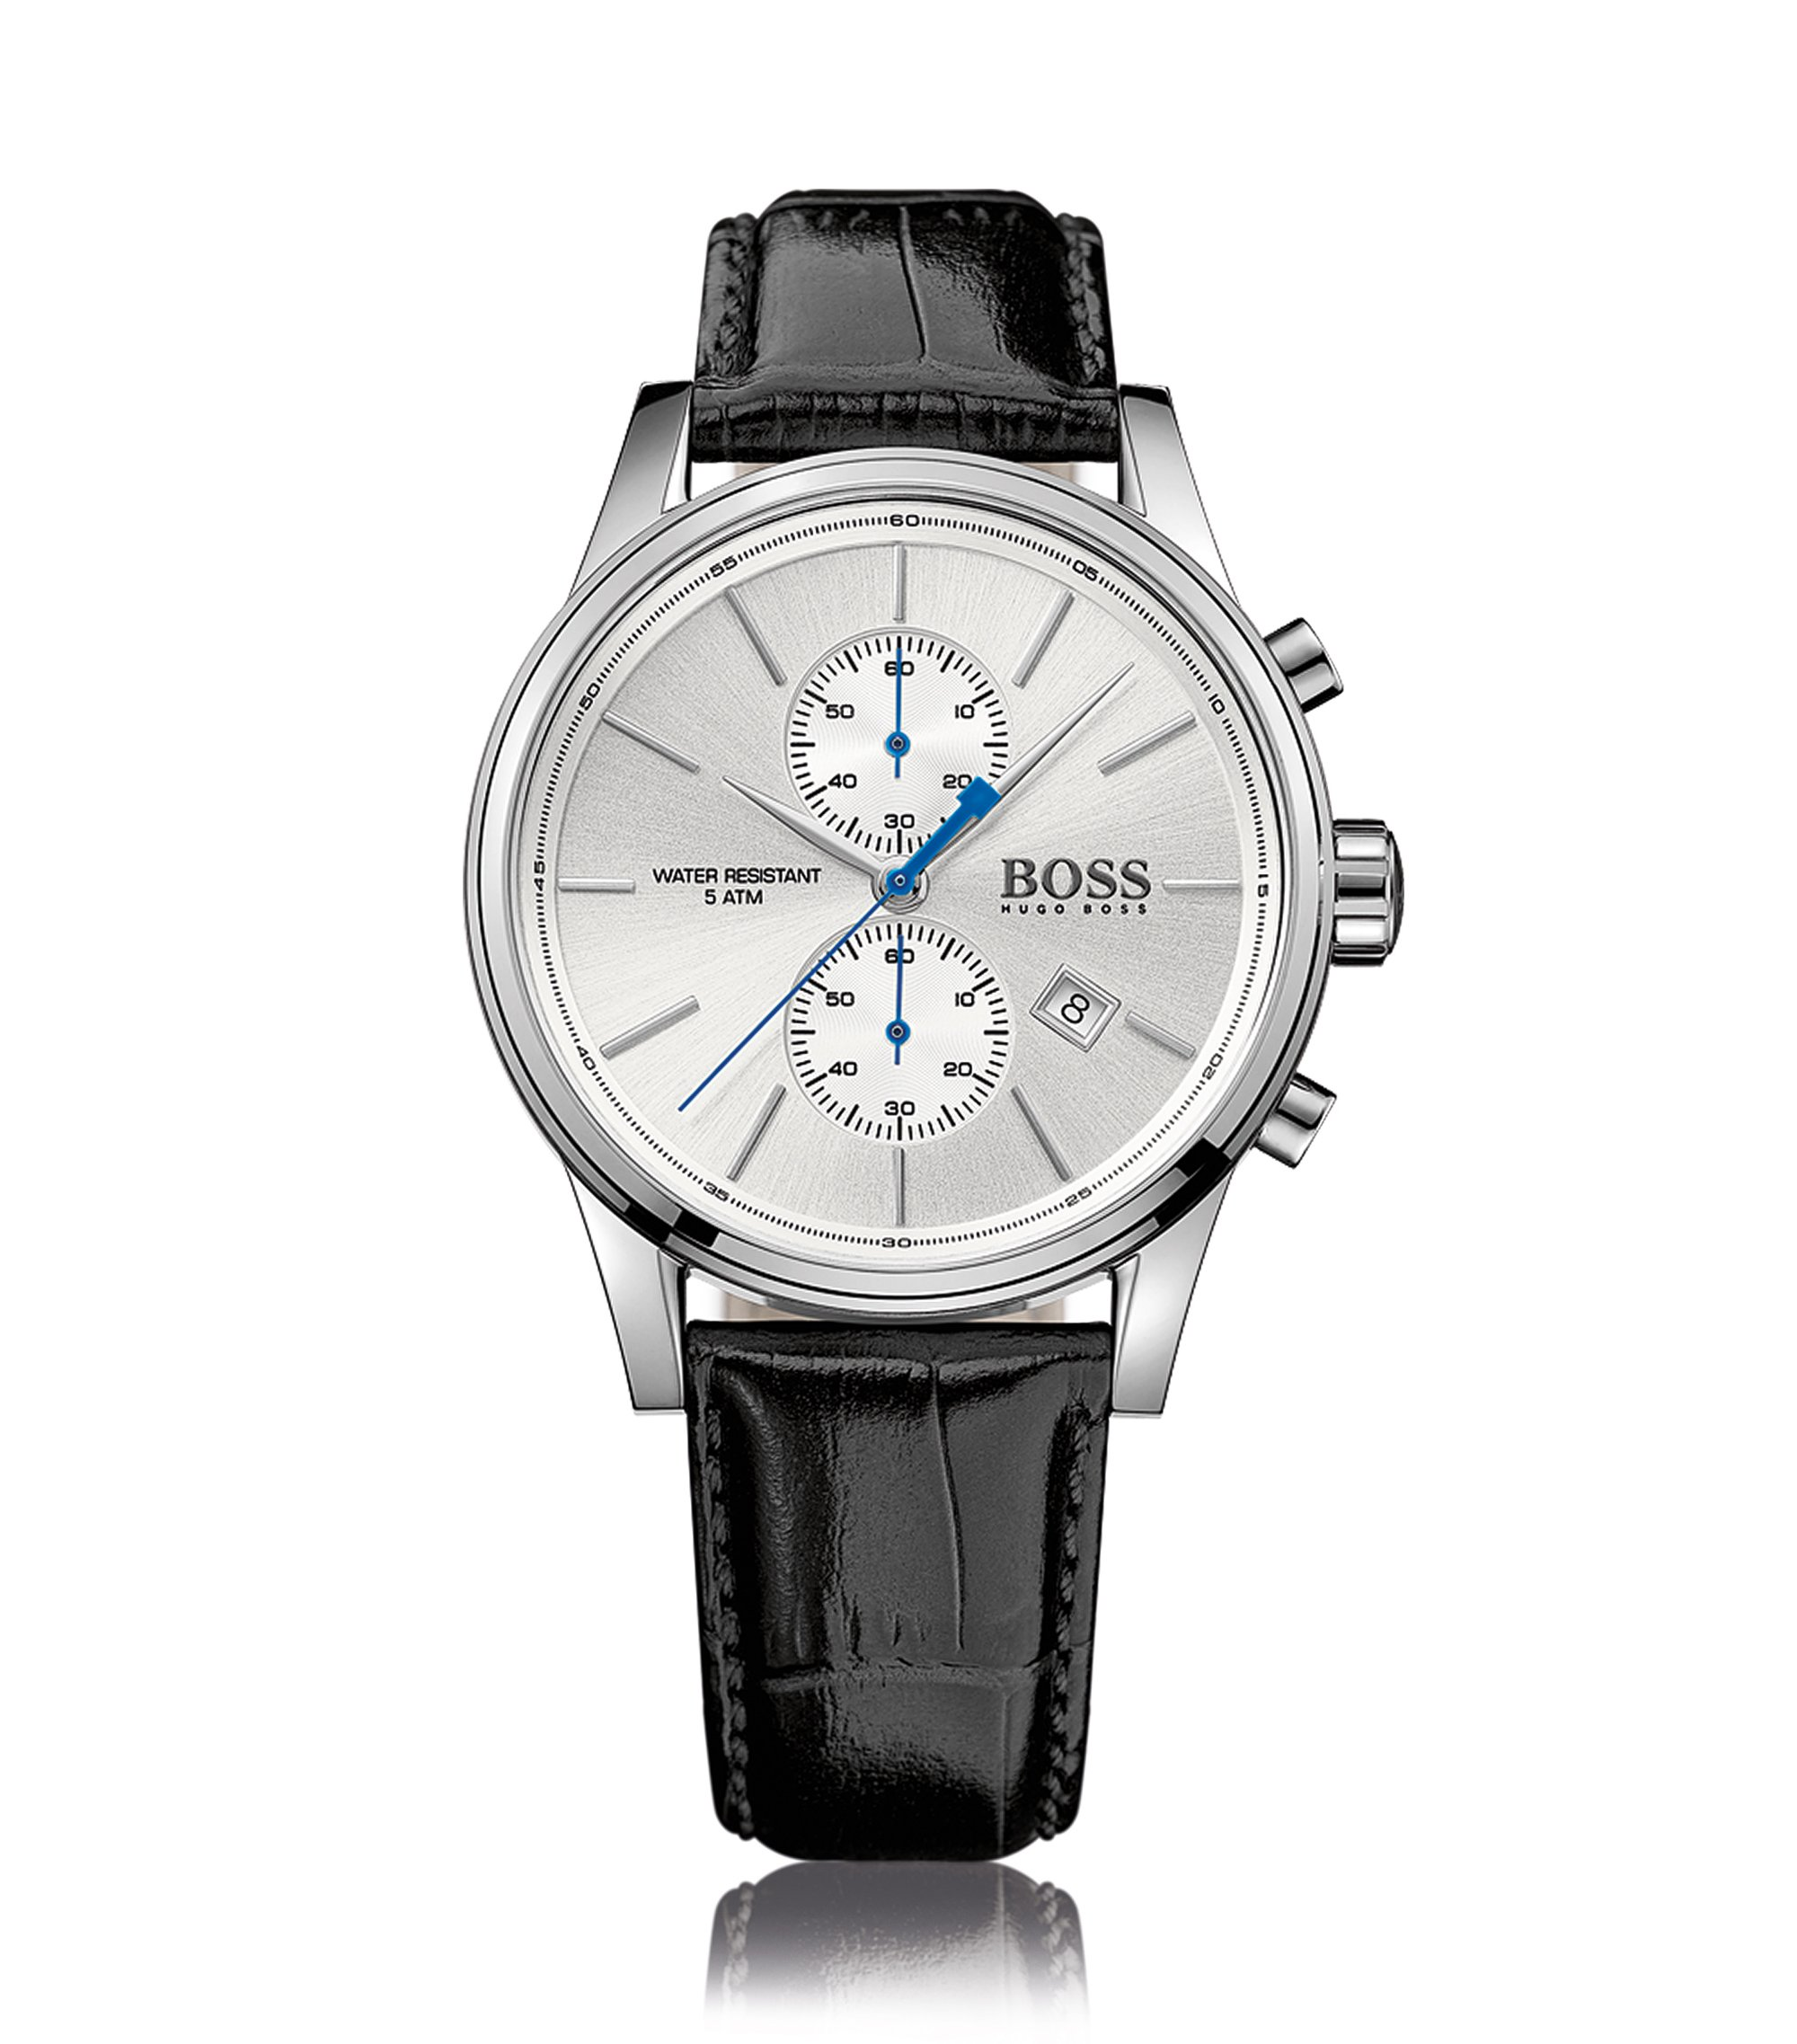 Polished stainless-steel two-eye chronograph watch with silver dial and leather strap, Black